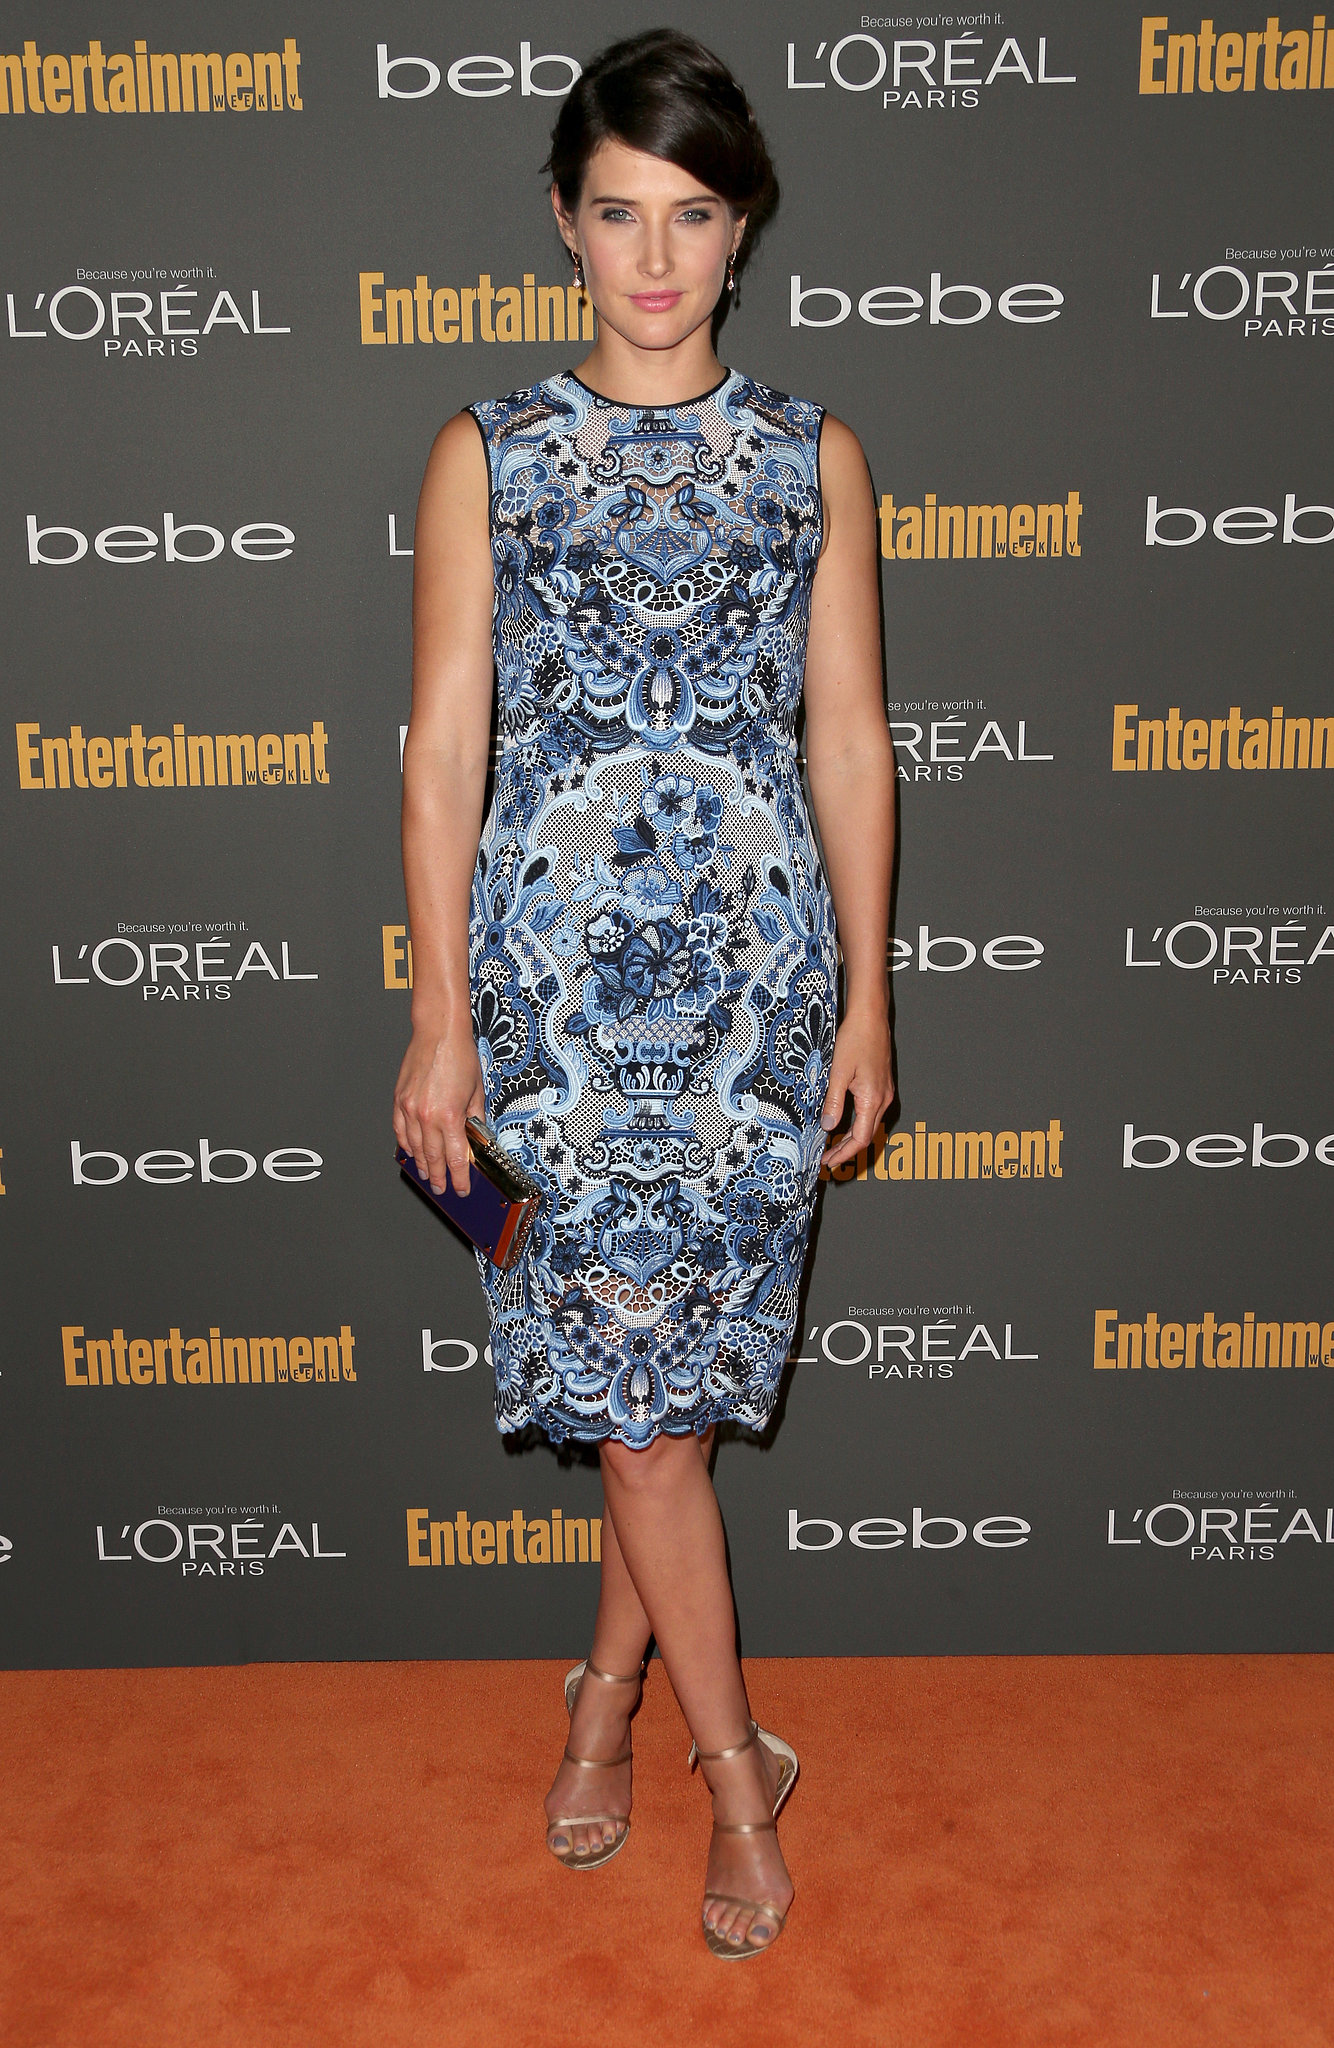 In a sea of black, Cobie Smulders popped in her blue printed sleeveless dress and metal